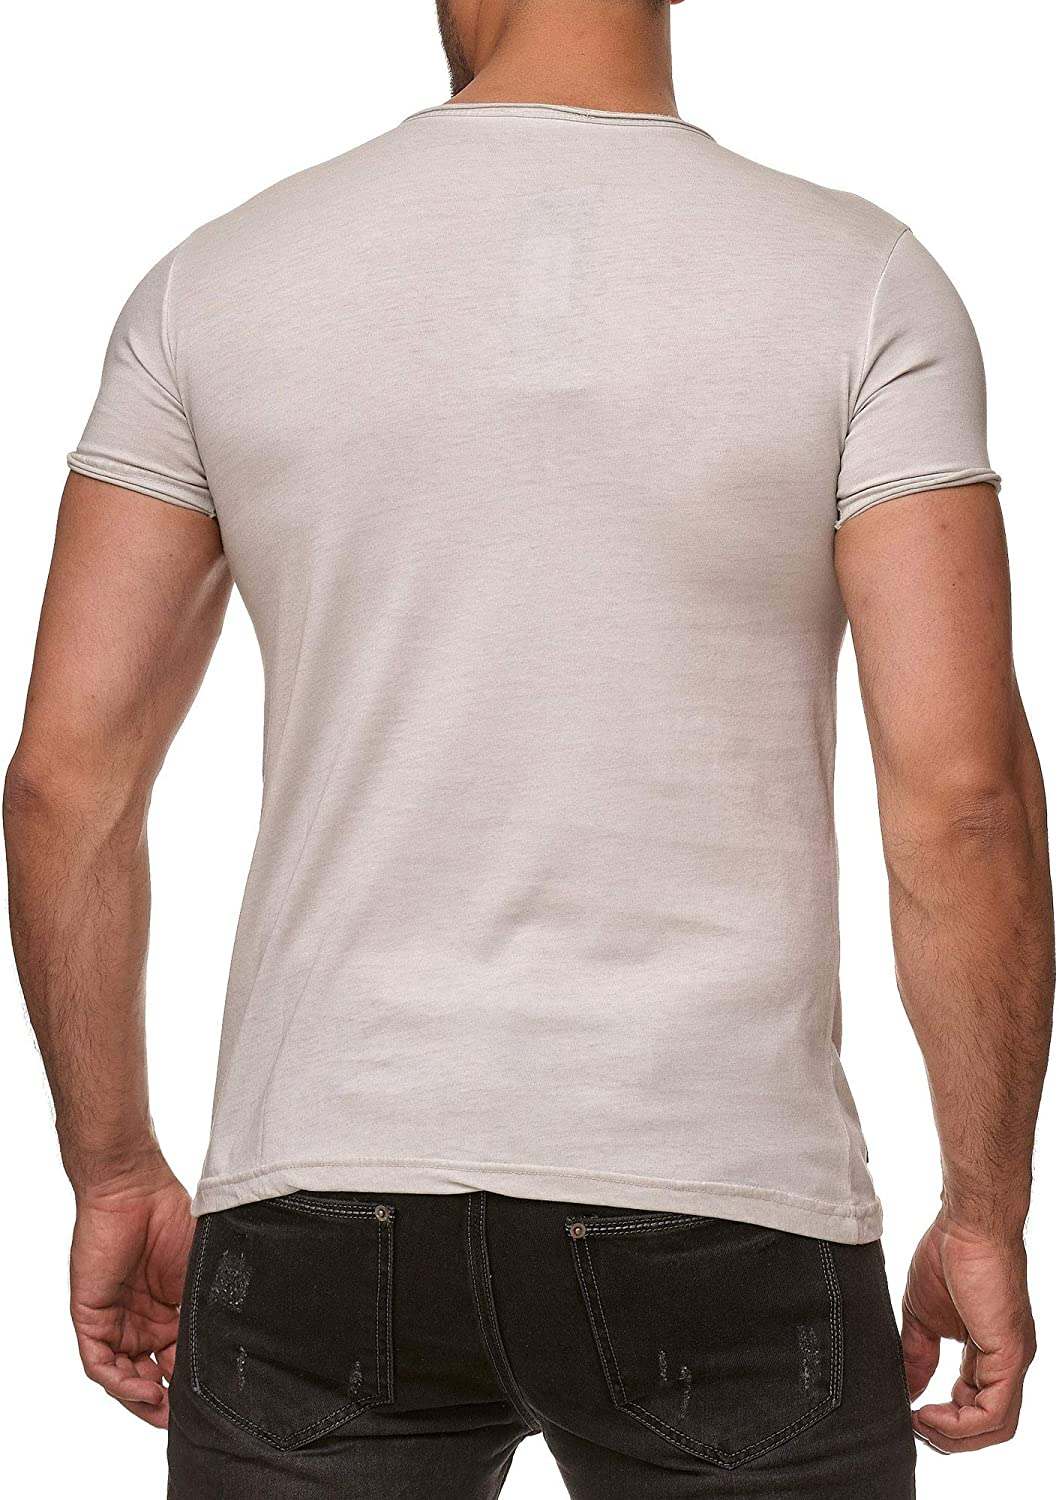 HERMKO 4887 Mens Extra Long V-Neck Shirt in Selected Sizes